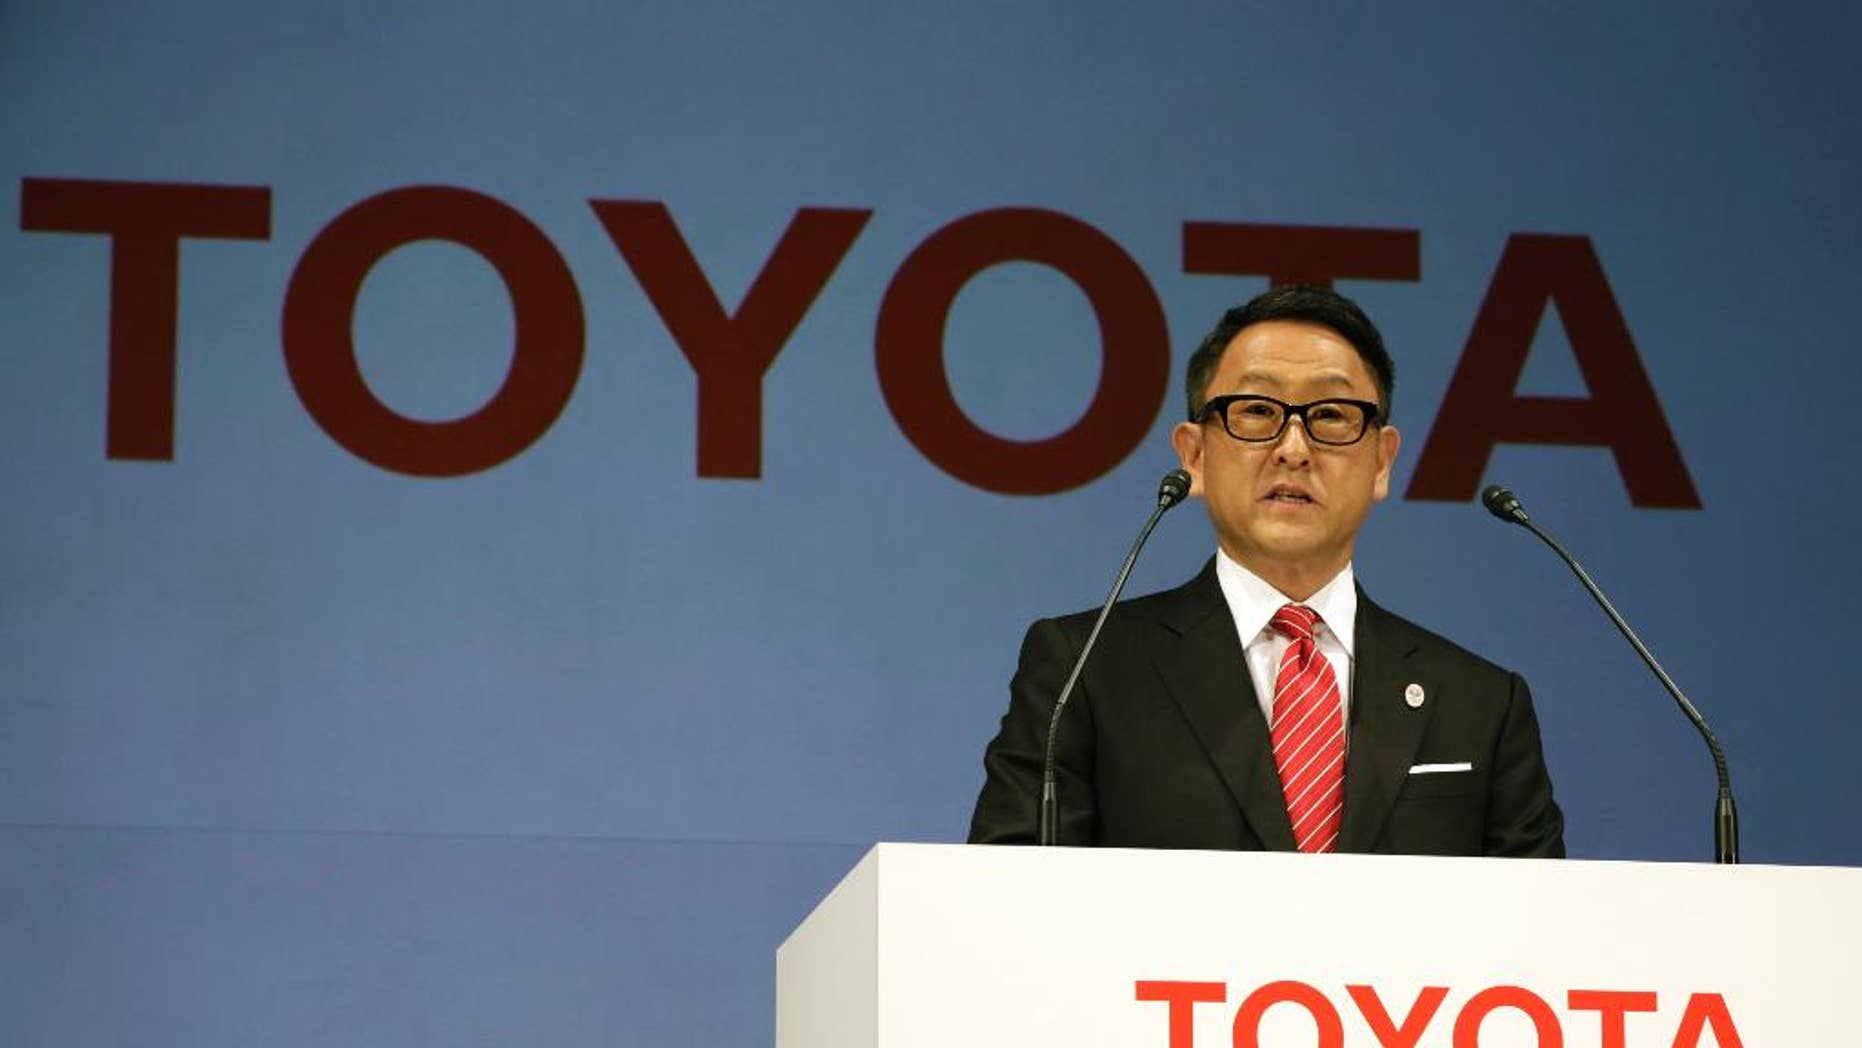 """FILE- In this March 13, 2015, file photo, Toyota President and CEO Akio Toyoda speaks during a press conference in Tokyo. Toyota Motor Corp. stock is skidding in Tokyo trading after U.S. President-elect Donald Trump said Thursday, Jan. 5, 2017 on Twitter that the Japanese automaker faces a """"big border tax"""" if it goes ahead with plans on a new Mexico plant. (AP Photo/Eugene Hoshiko, File)"""